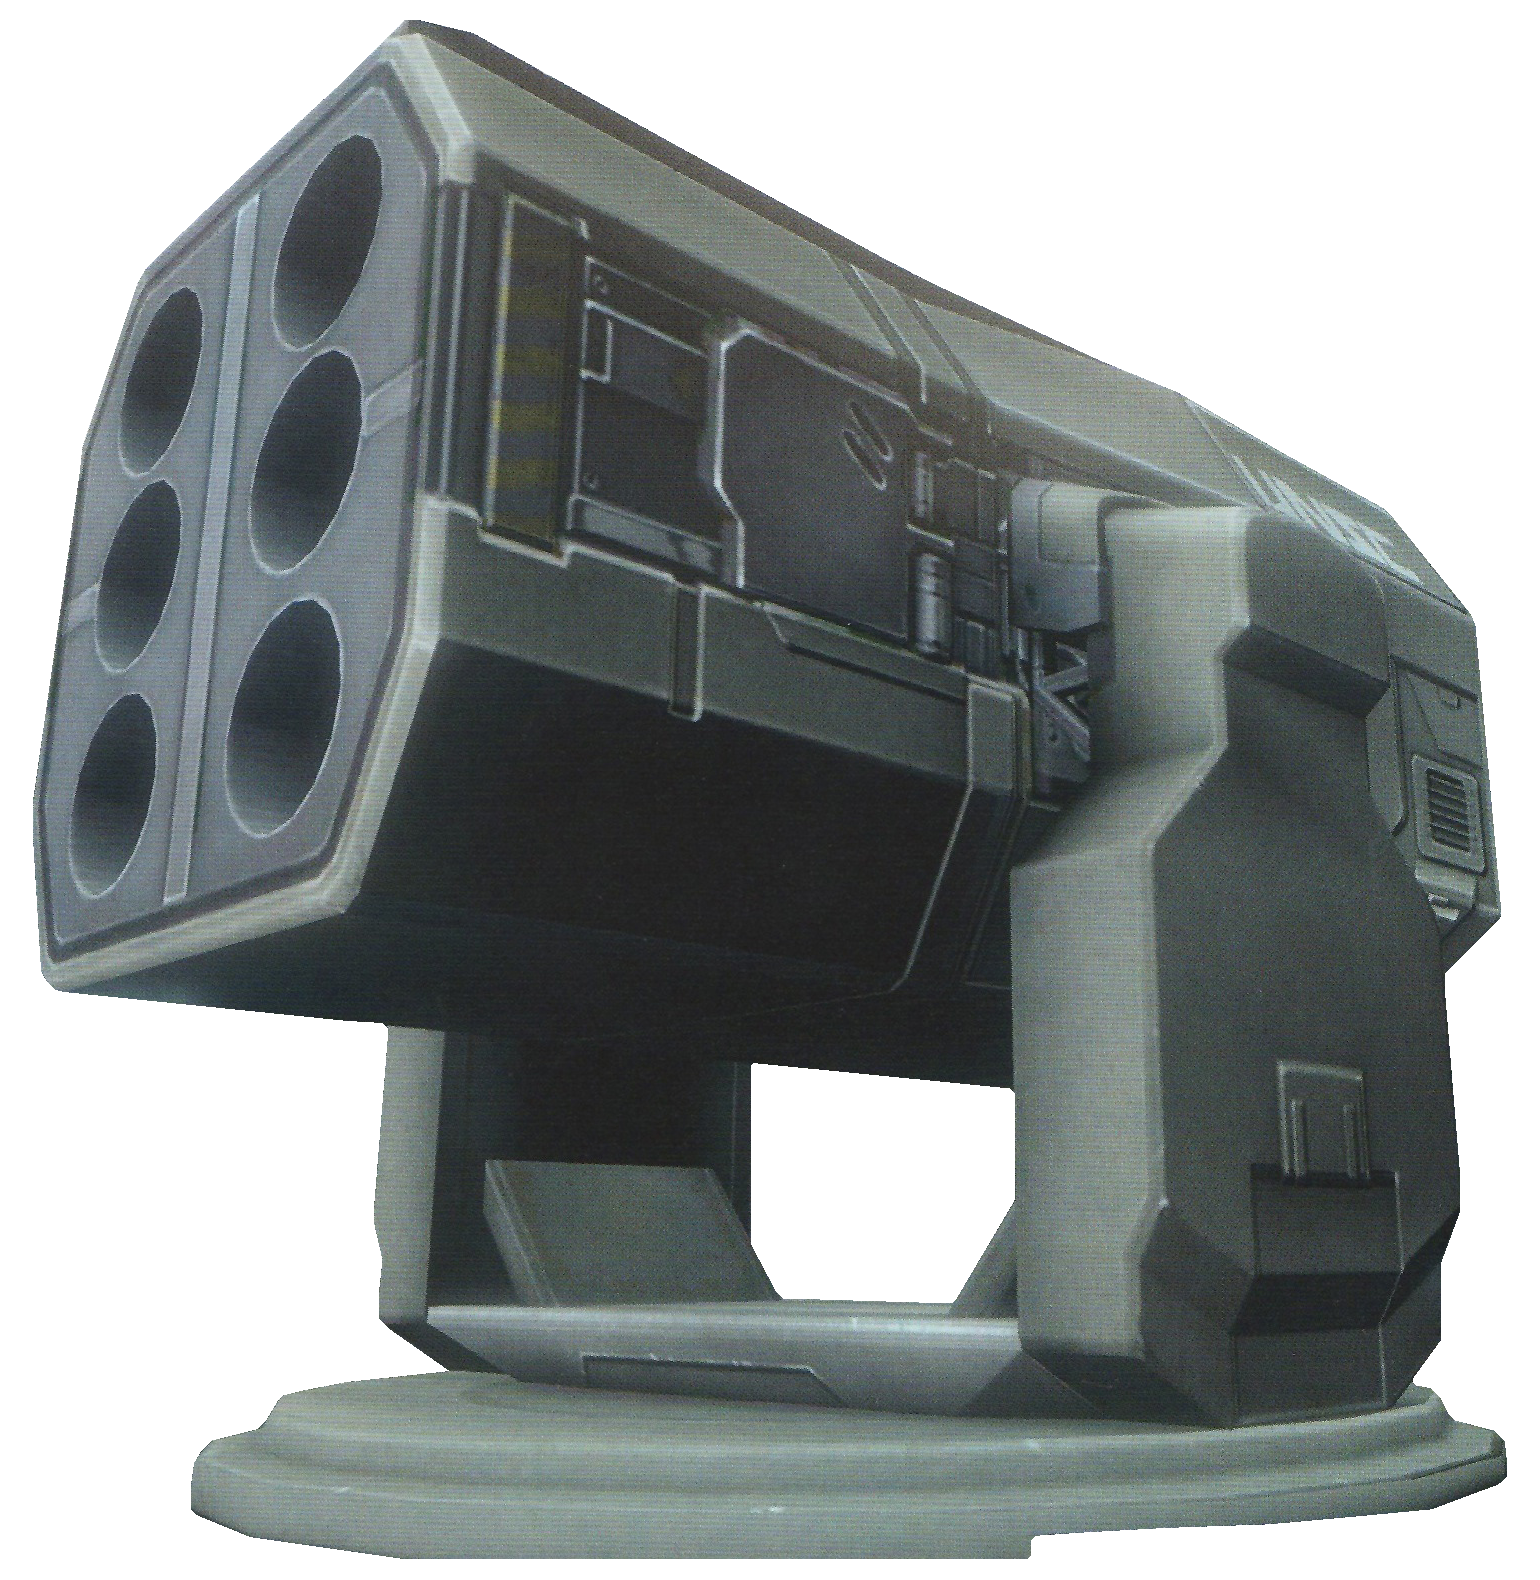 M97 Guided Missile Weapon System